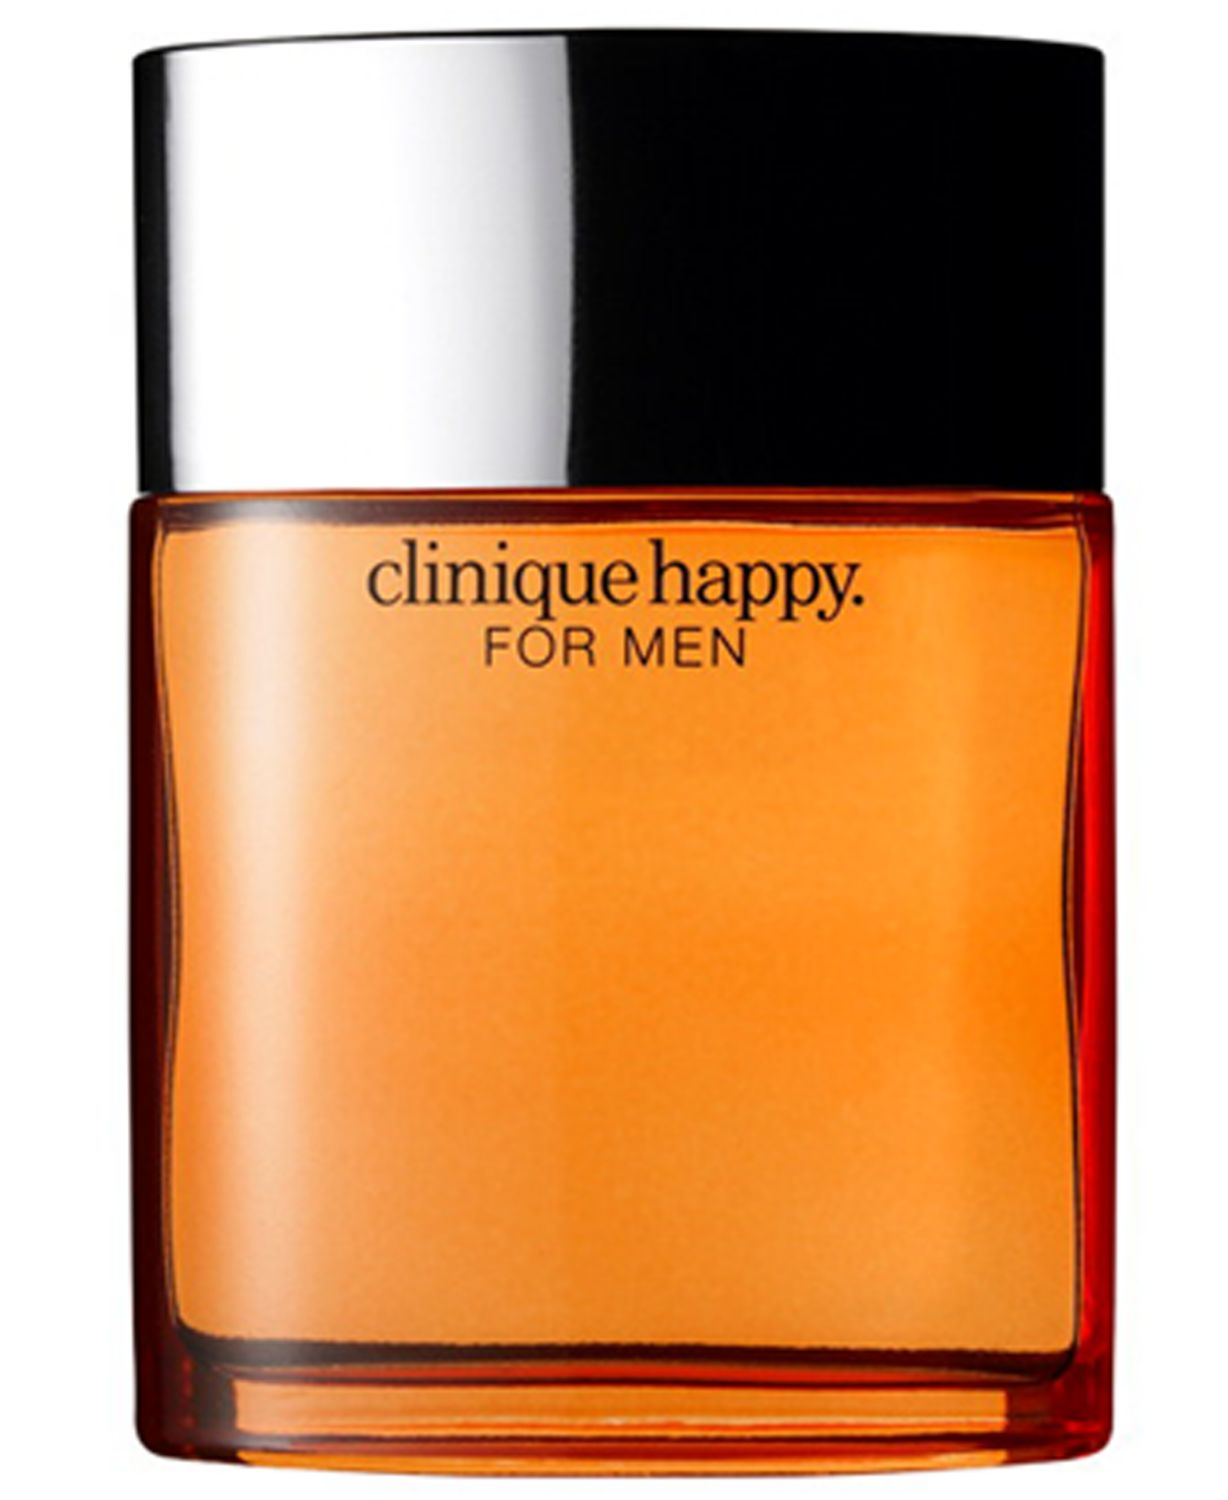 Clinique Happy for Men Cologne Spray, 1.7 oz. & Reviews - All Cologne - Beauty - Macy's